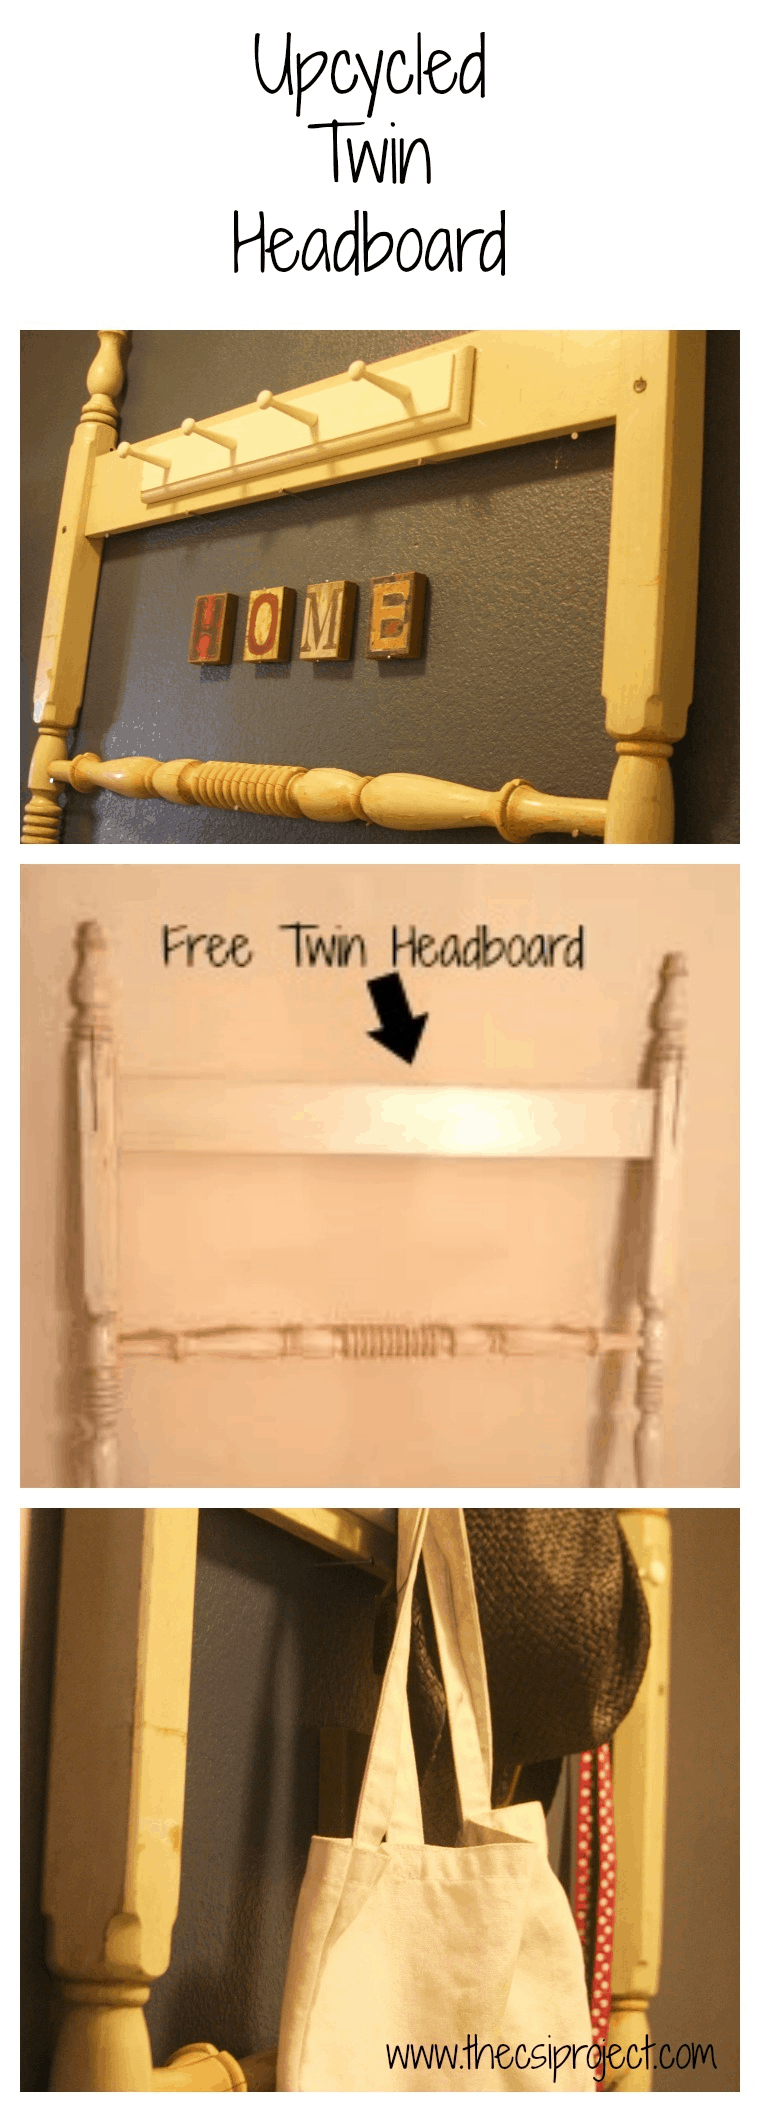 Upcycled Headboard